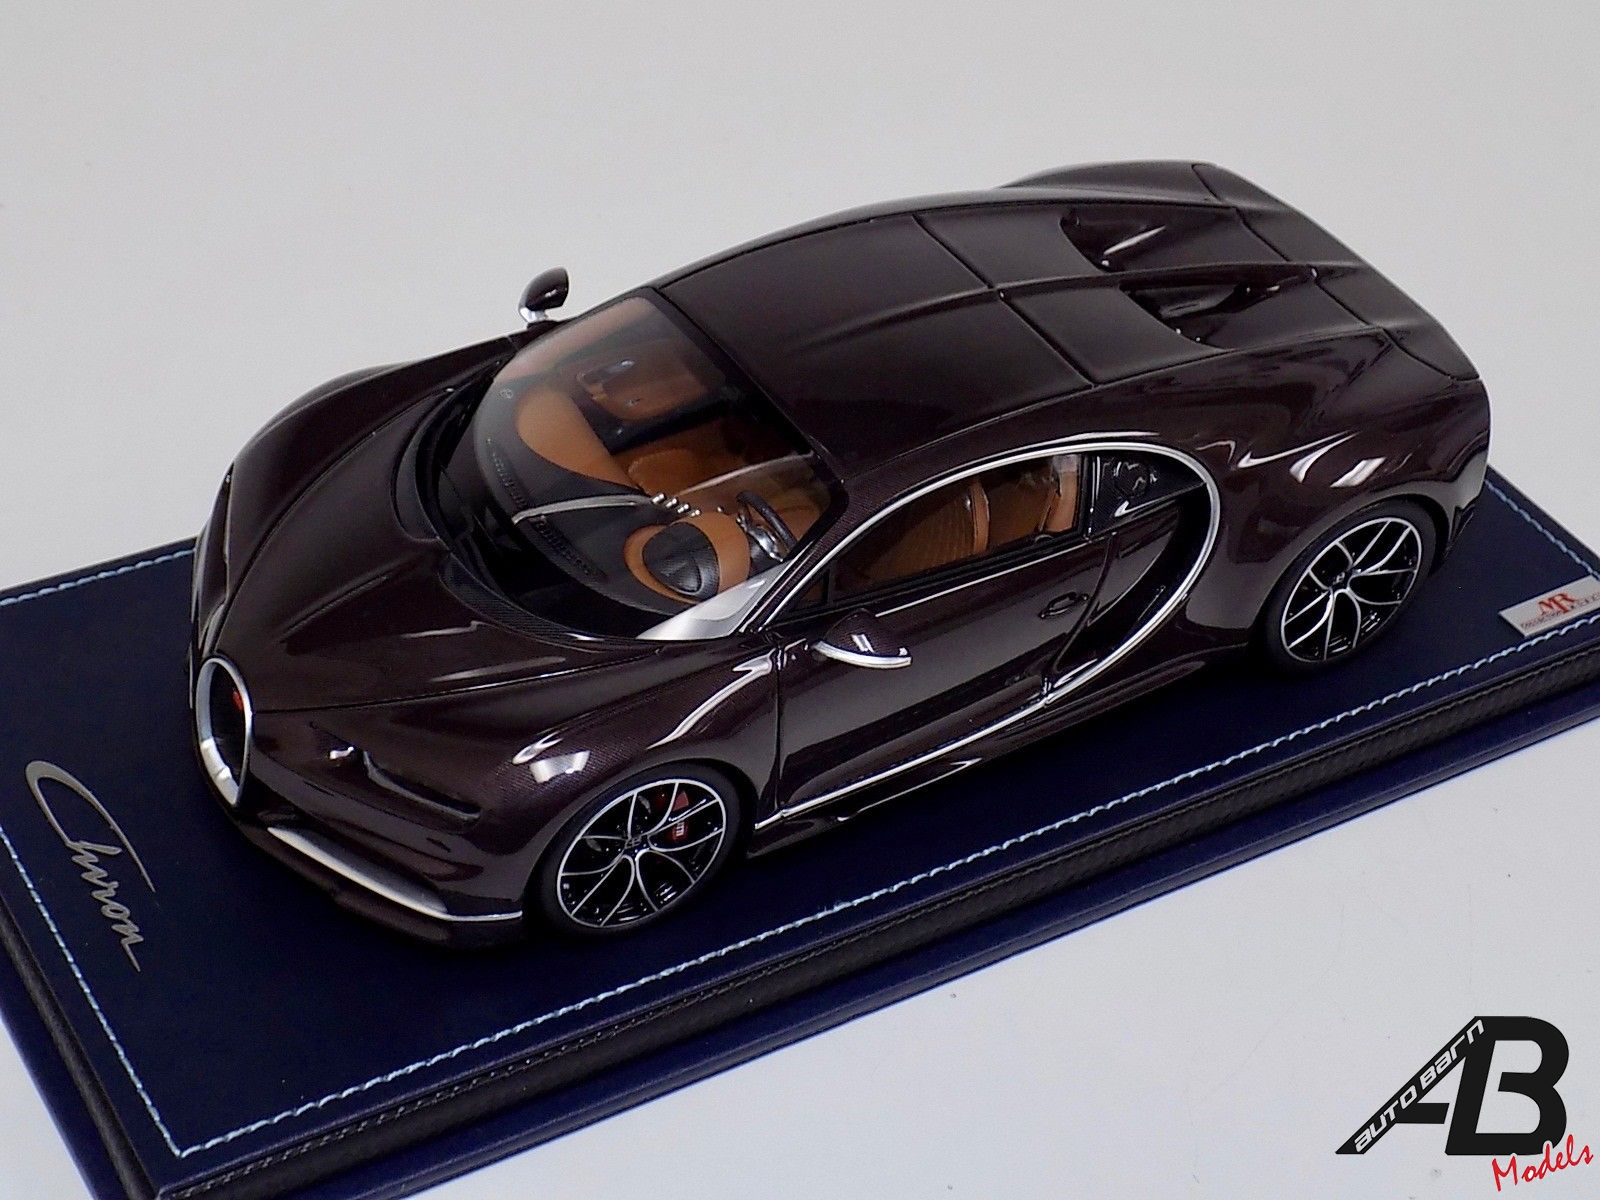 1:18 MR Collection Bugatti Chiron Brown Carbon Fiber Body on Leather